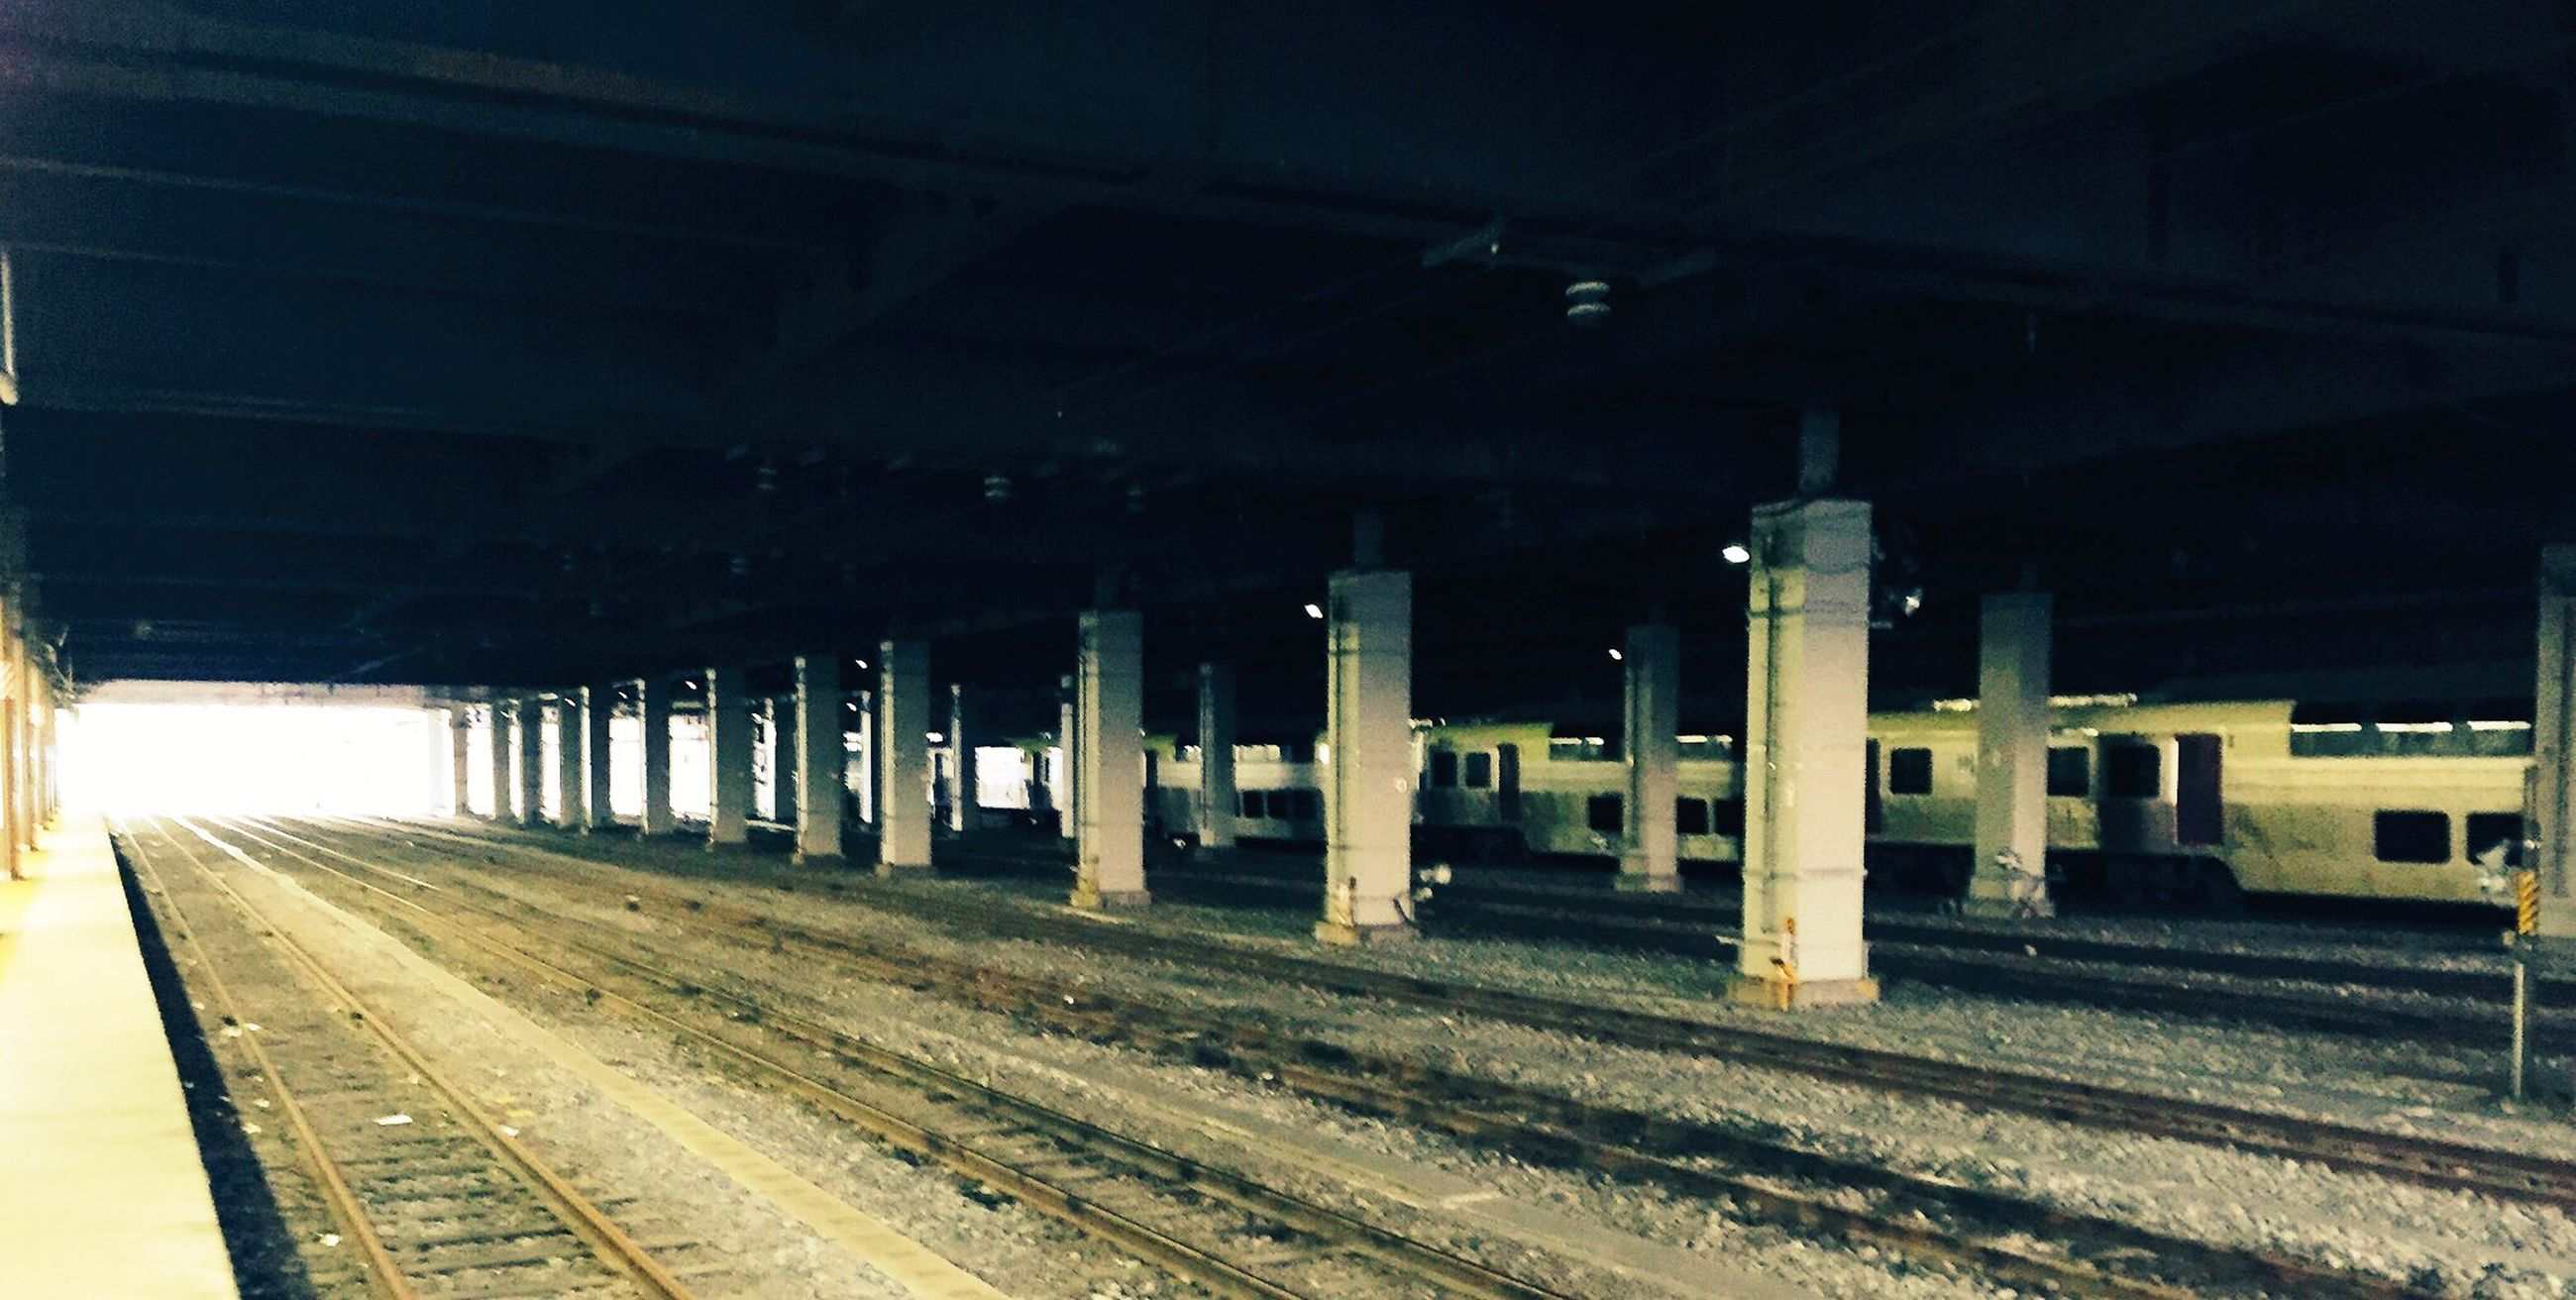 railroad track, built structure, architecture, public transportation, architectural column, the way forward, diminishing perspective, illuminated, empty, no people, column, outdoors, sky, vanishing point